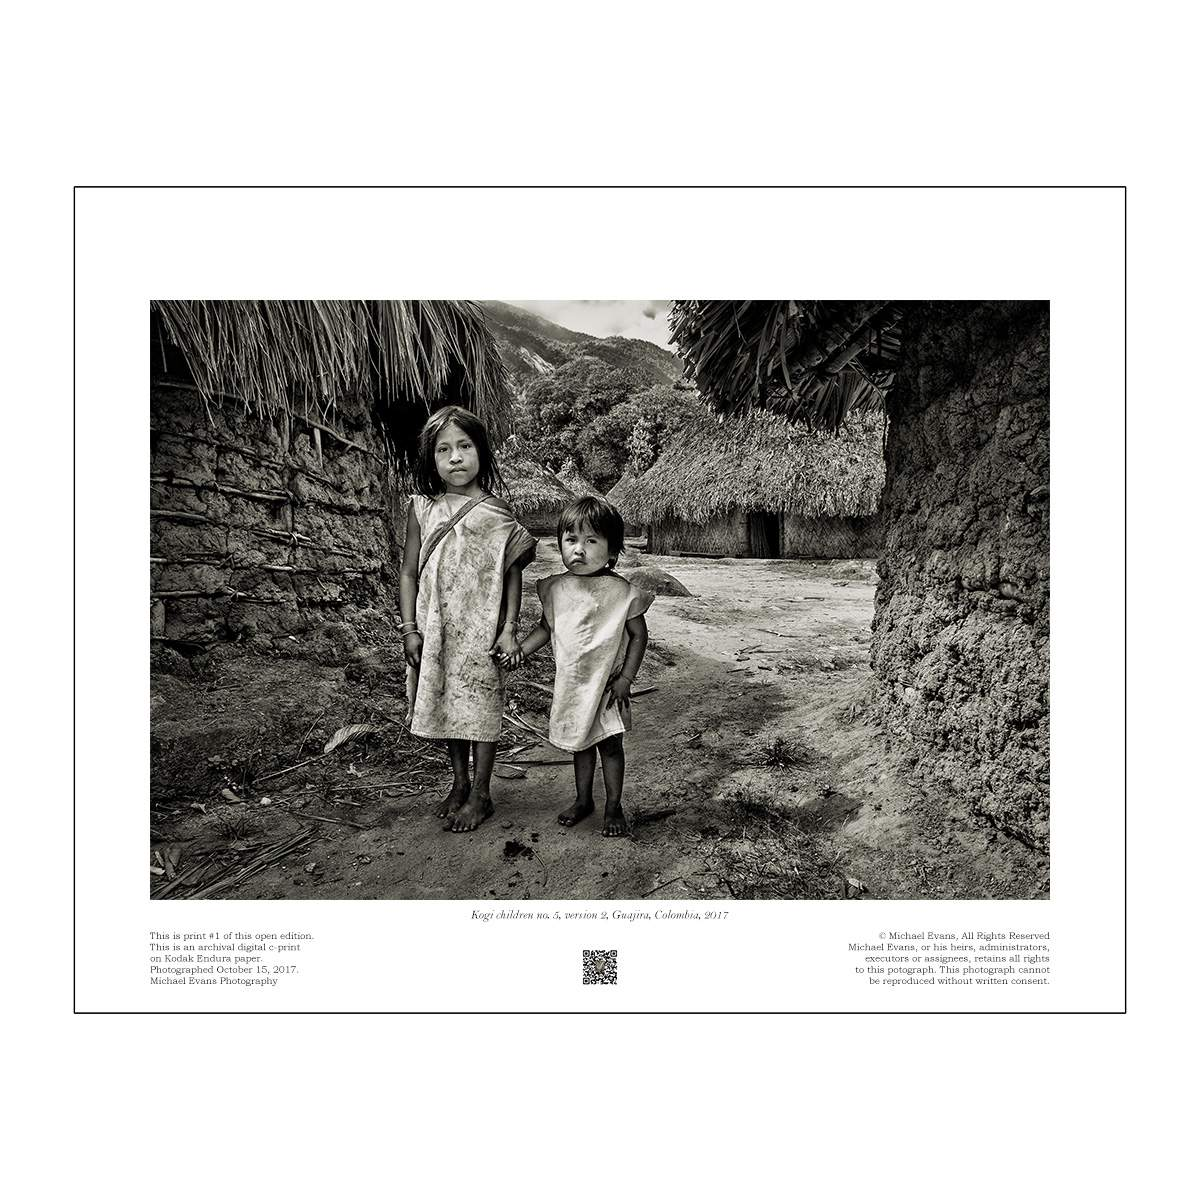 Kogi children no. 5, version 2